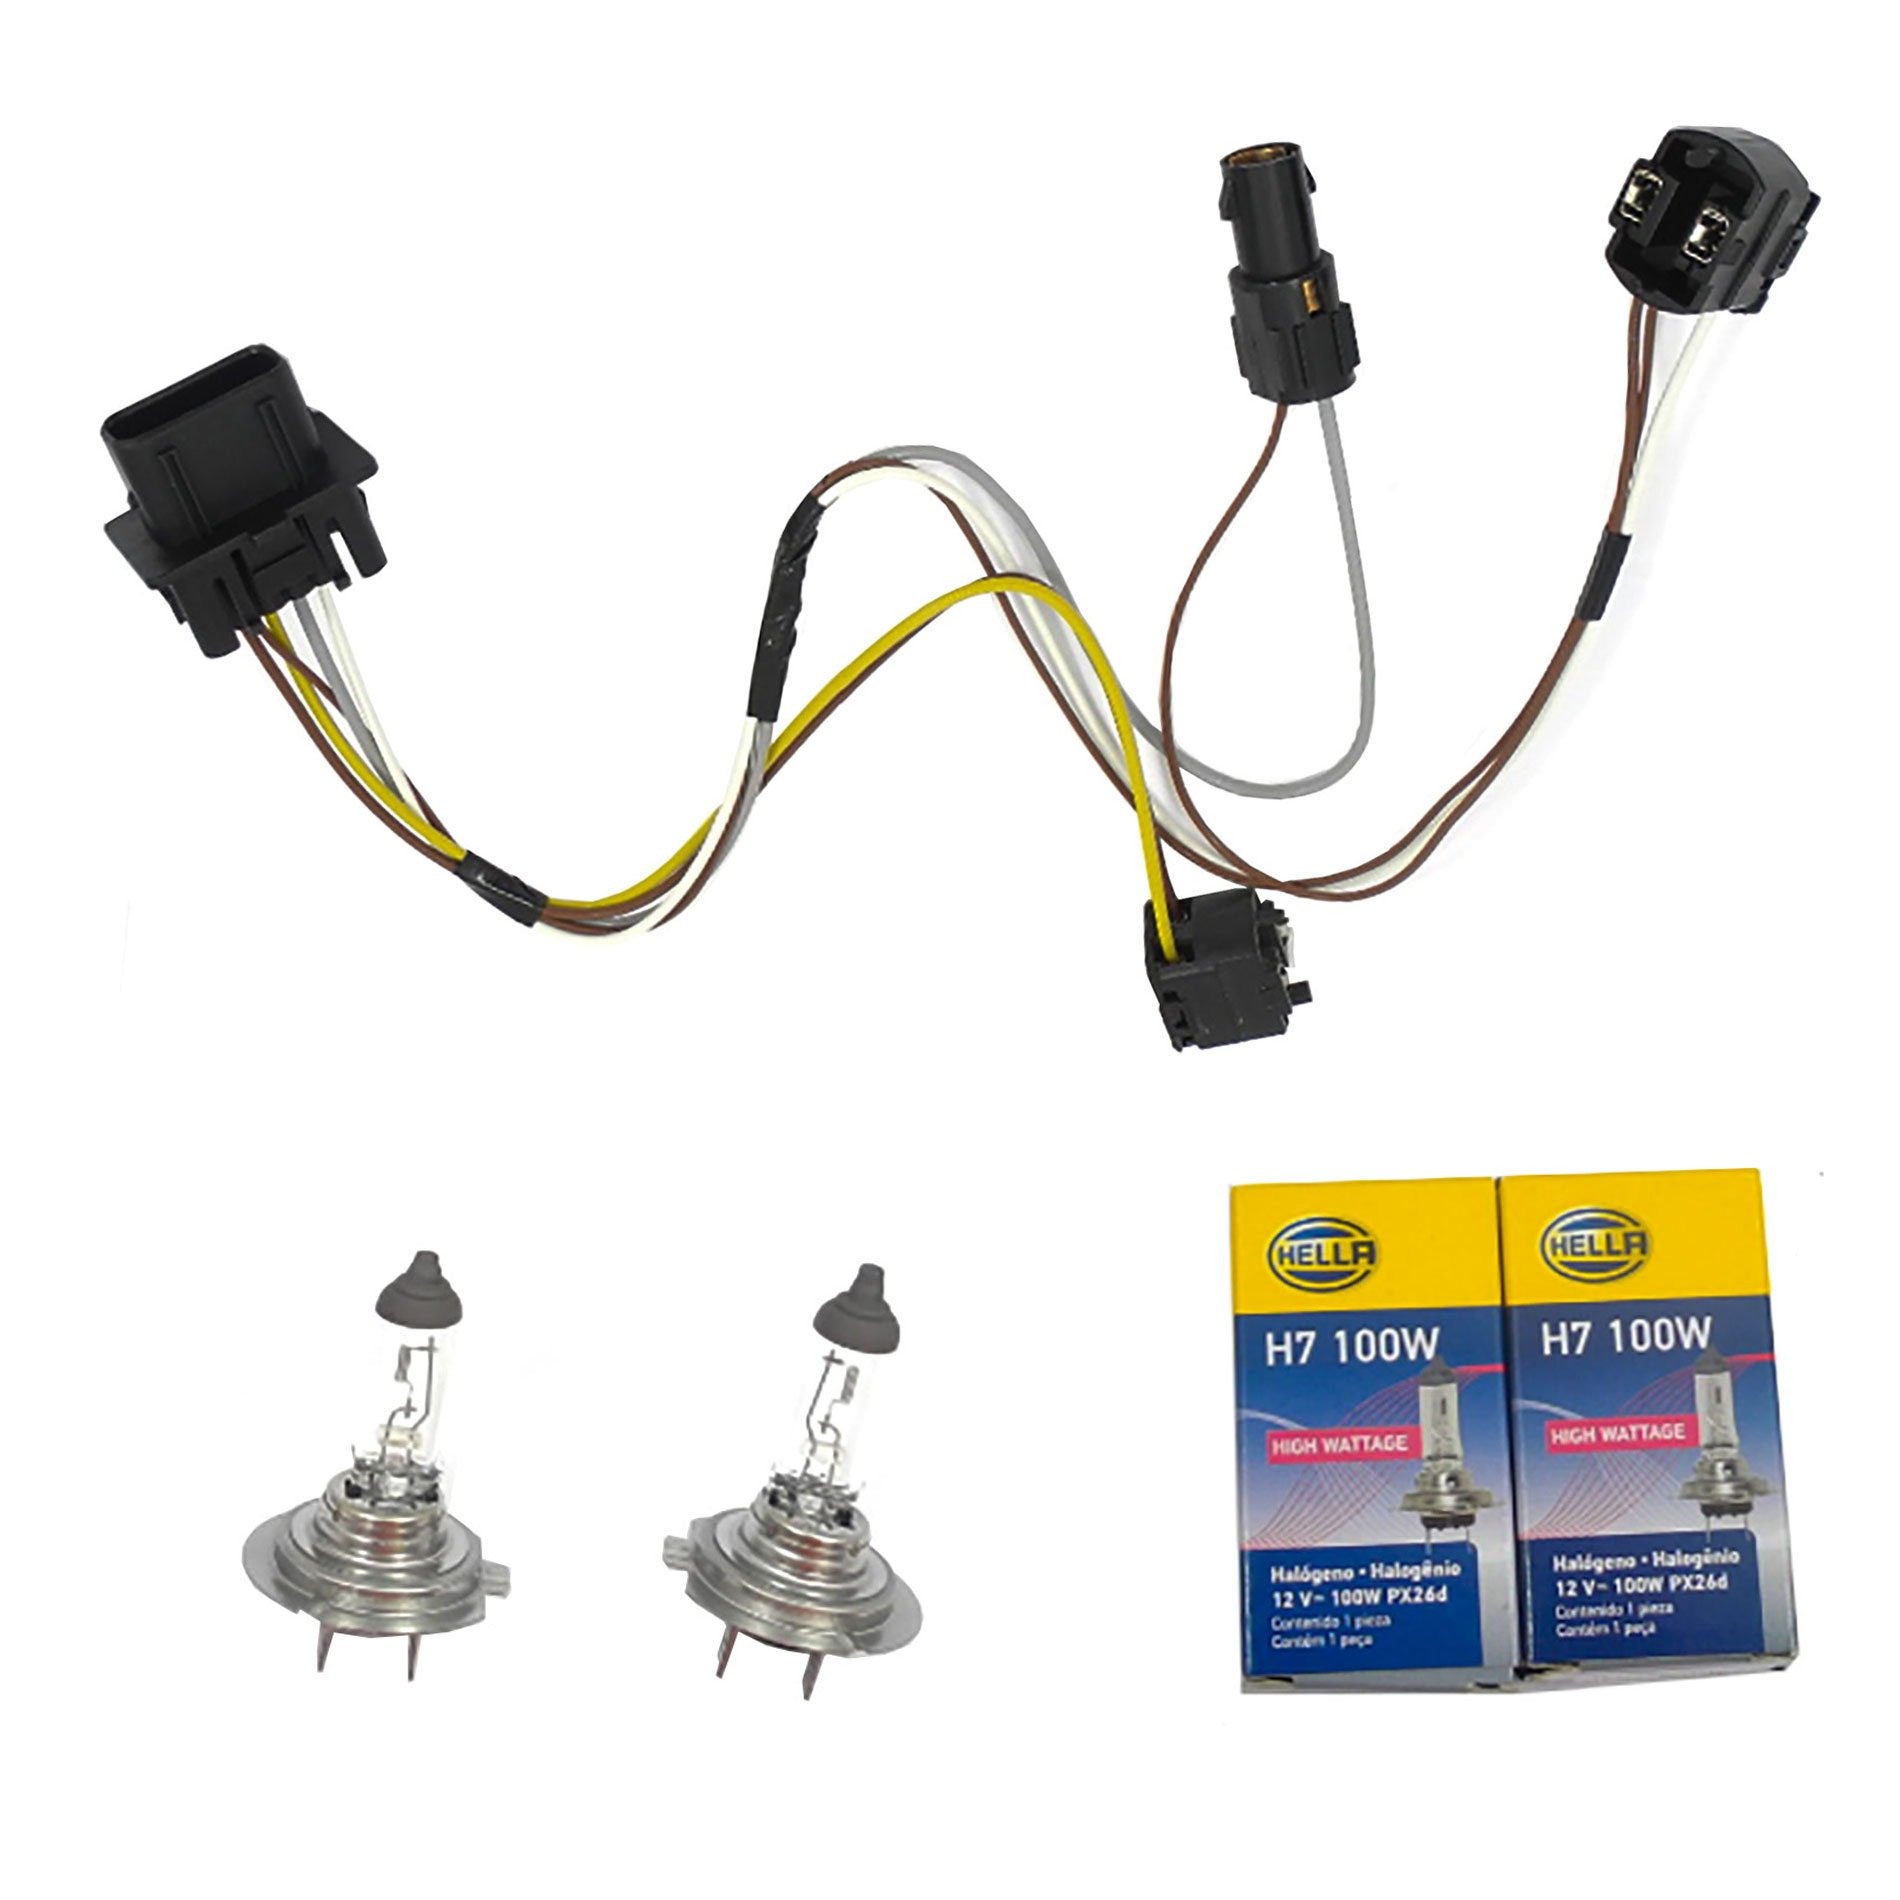 medium resolution of cf advance for 96 03 mercedes benz e300 e320 e420 e430 e500 e55 amg 1997 mercedes e320 problems 1997 mercedes e320 headlight wiring harness